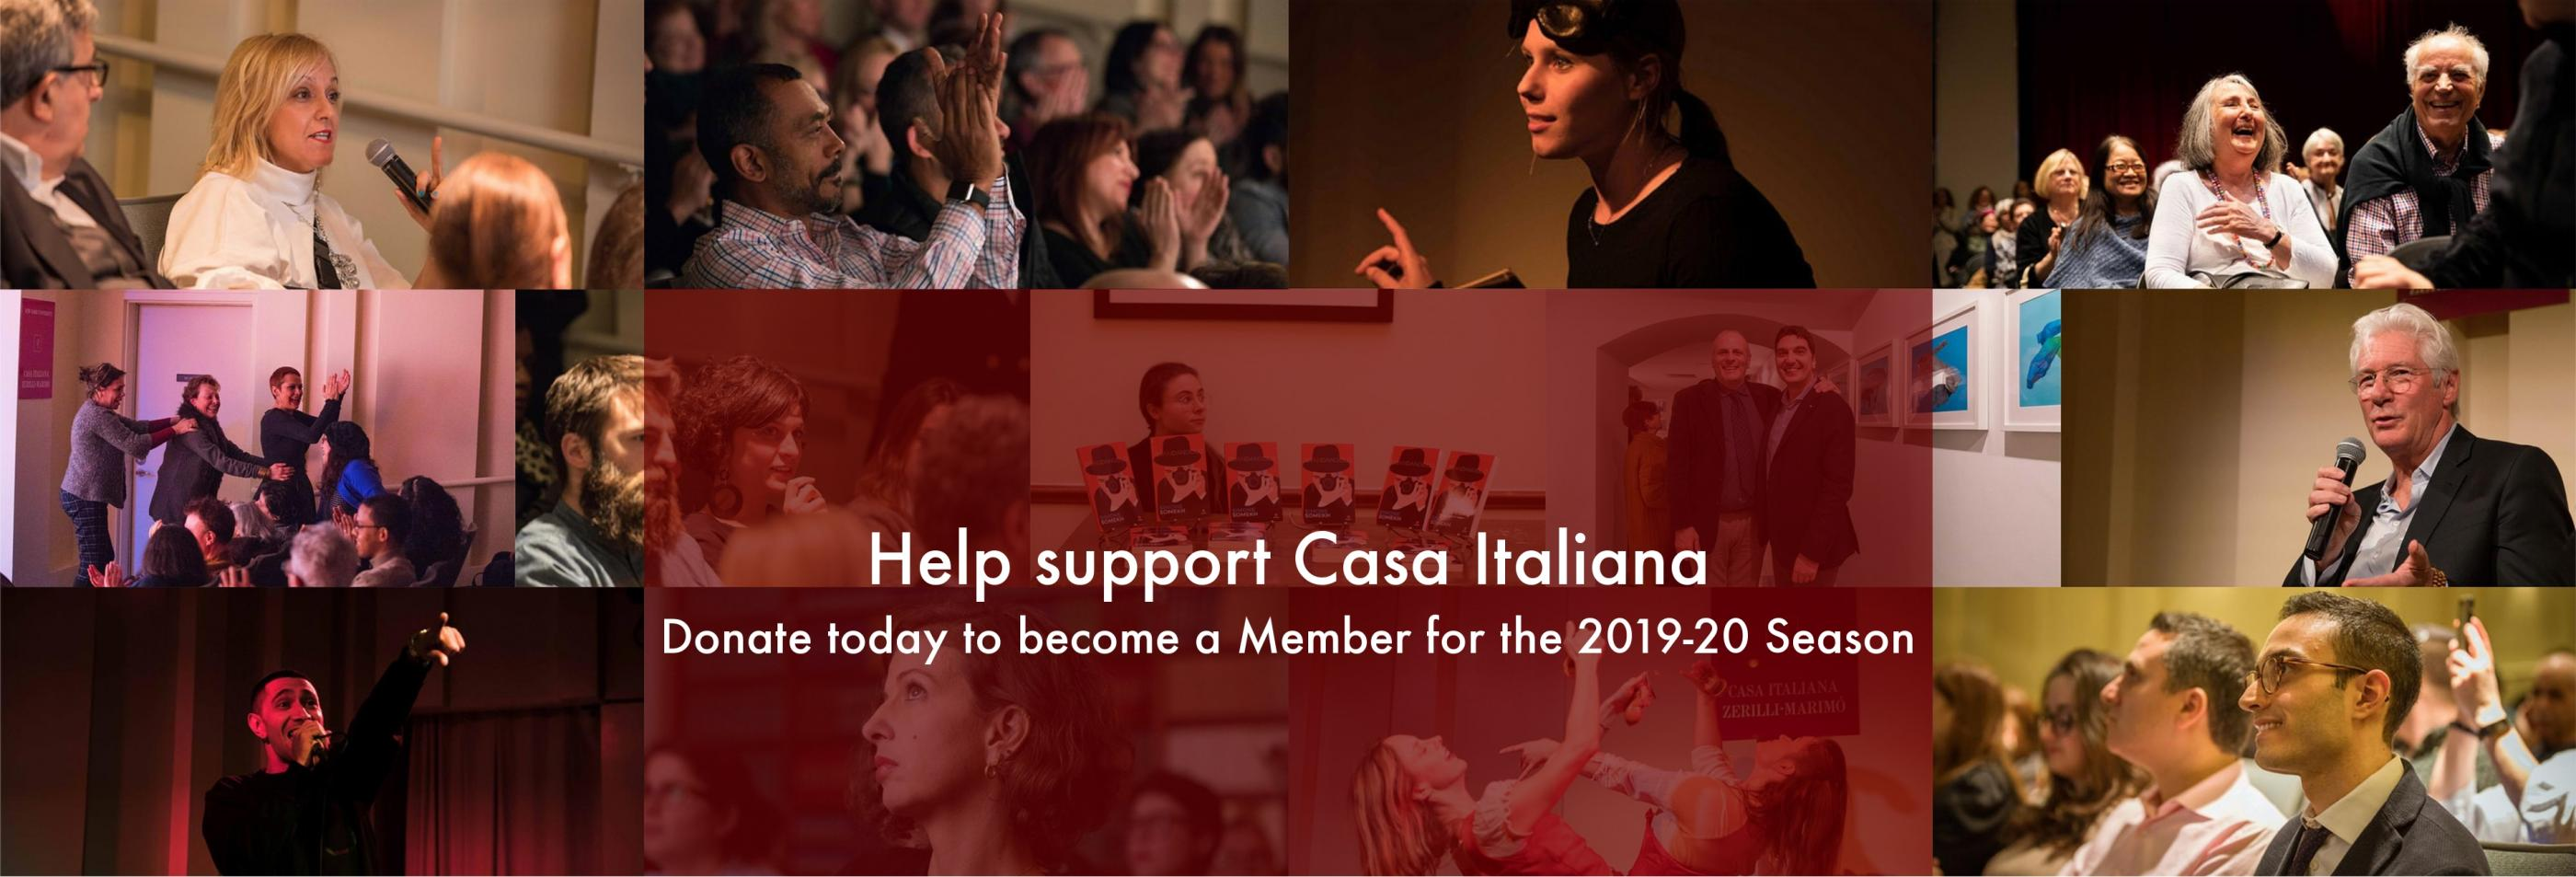 Help Support Casa Italiana and Become a Member for the 2019-20 Season